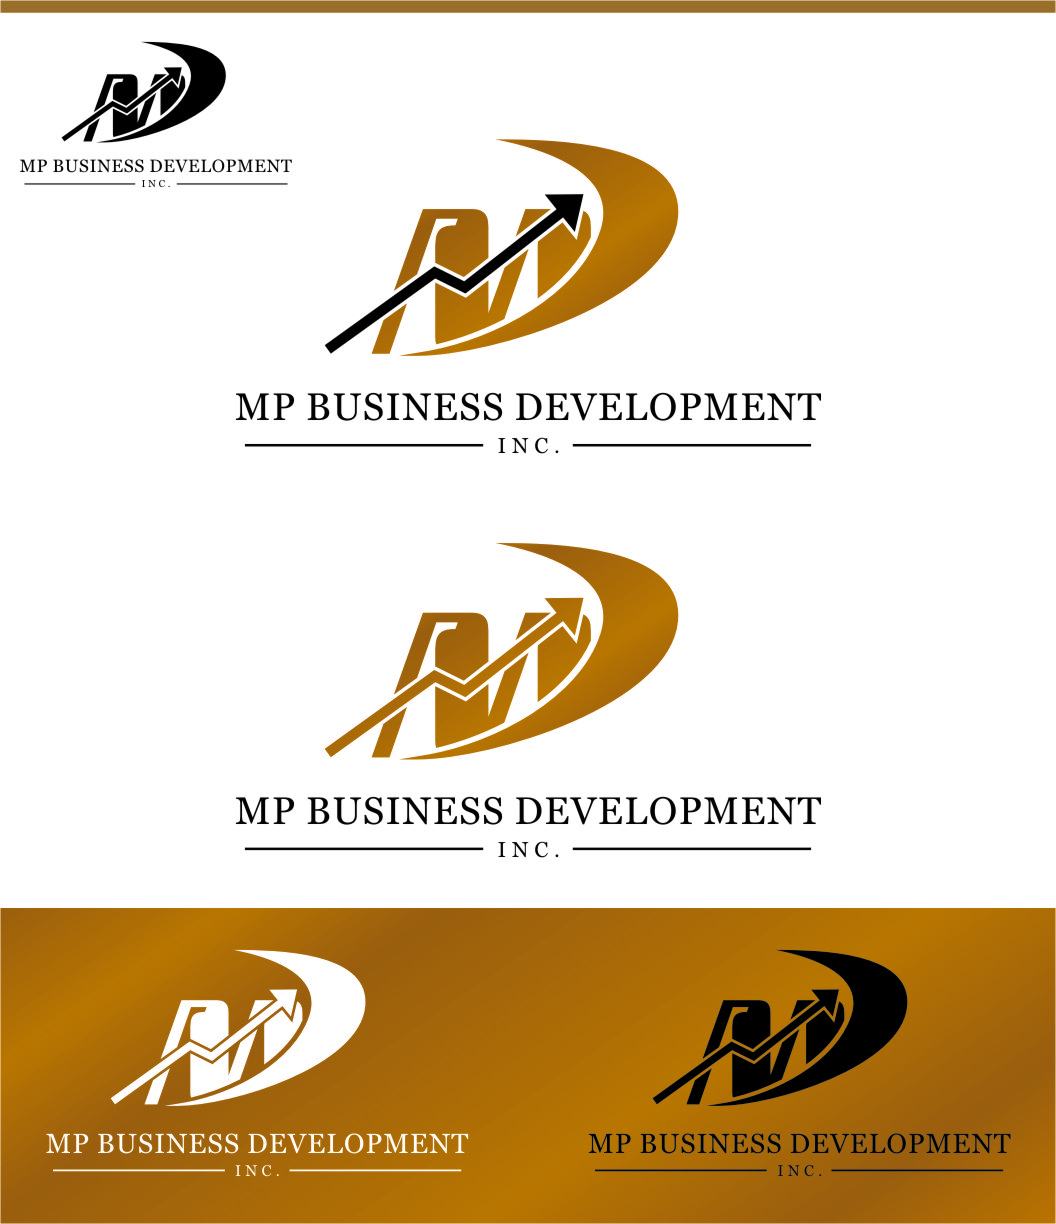 Logo Design by RasYa Muhammad Athaya - Entry No. 149 in the Logo Design Contest MP Business Development Inc. Logo Design.